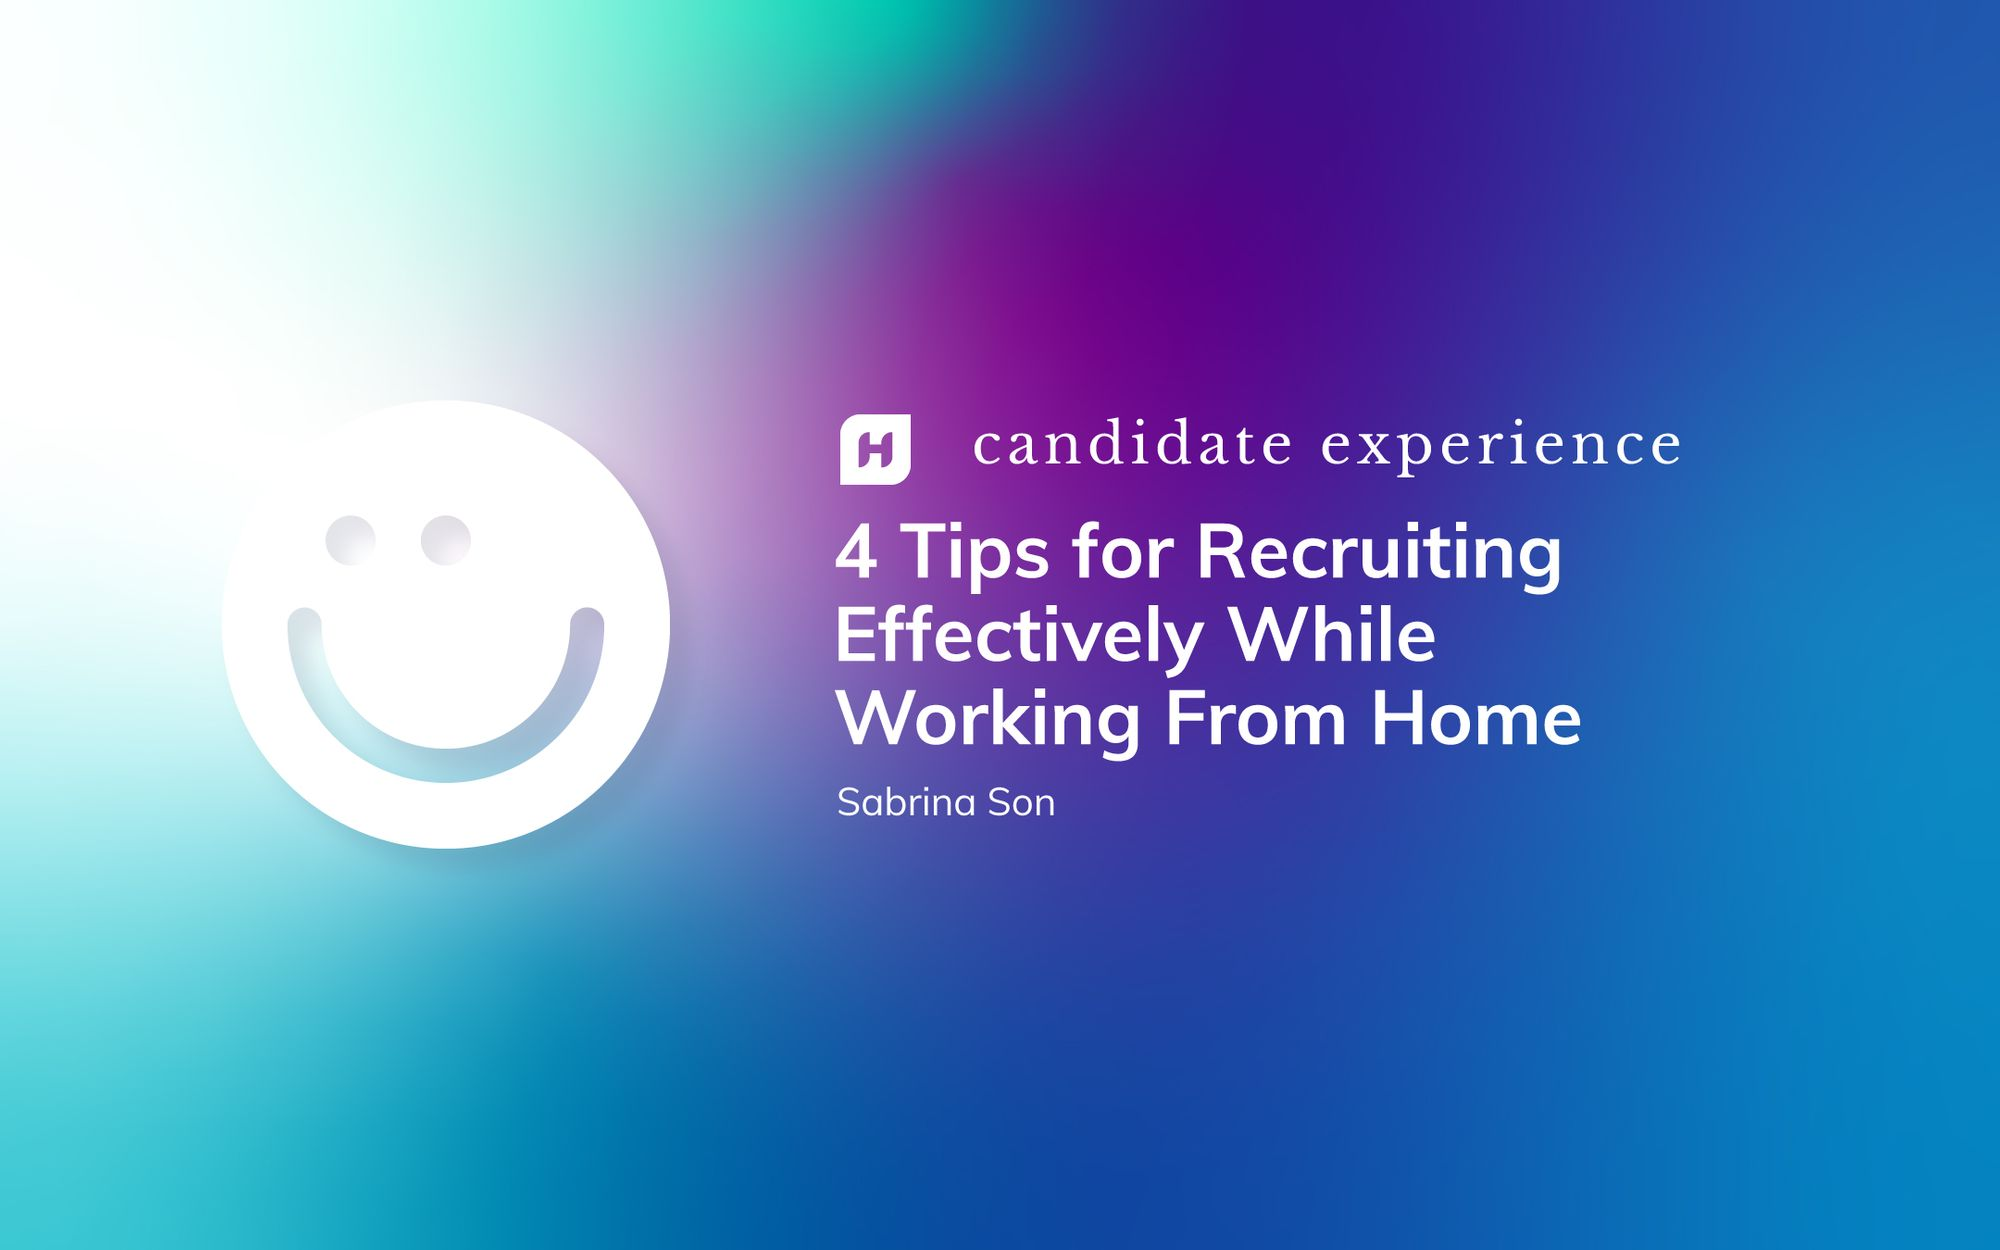 4 Tips for Recruiting Effectively While Working from Home